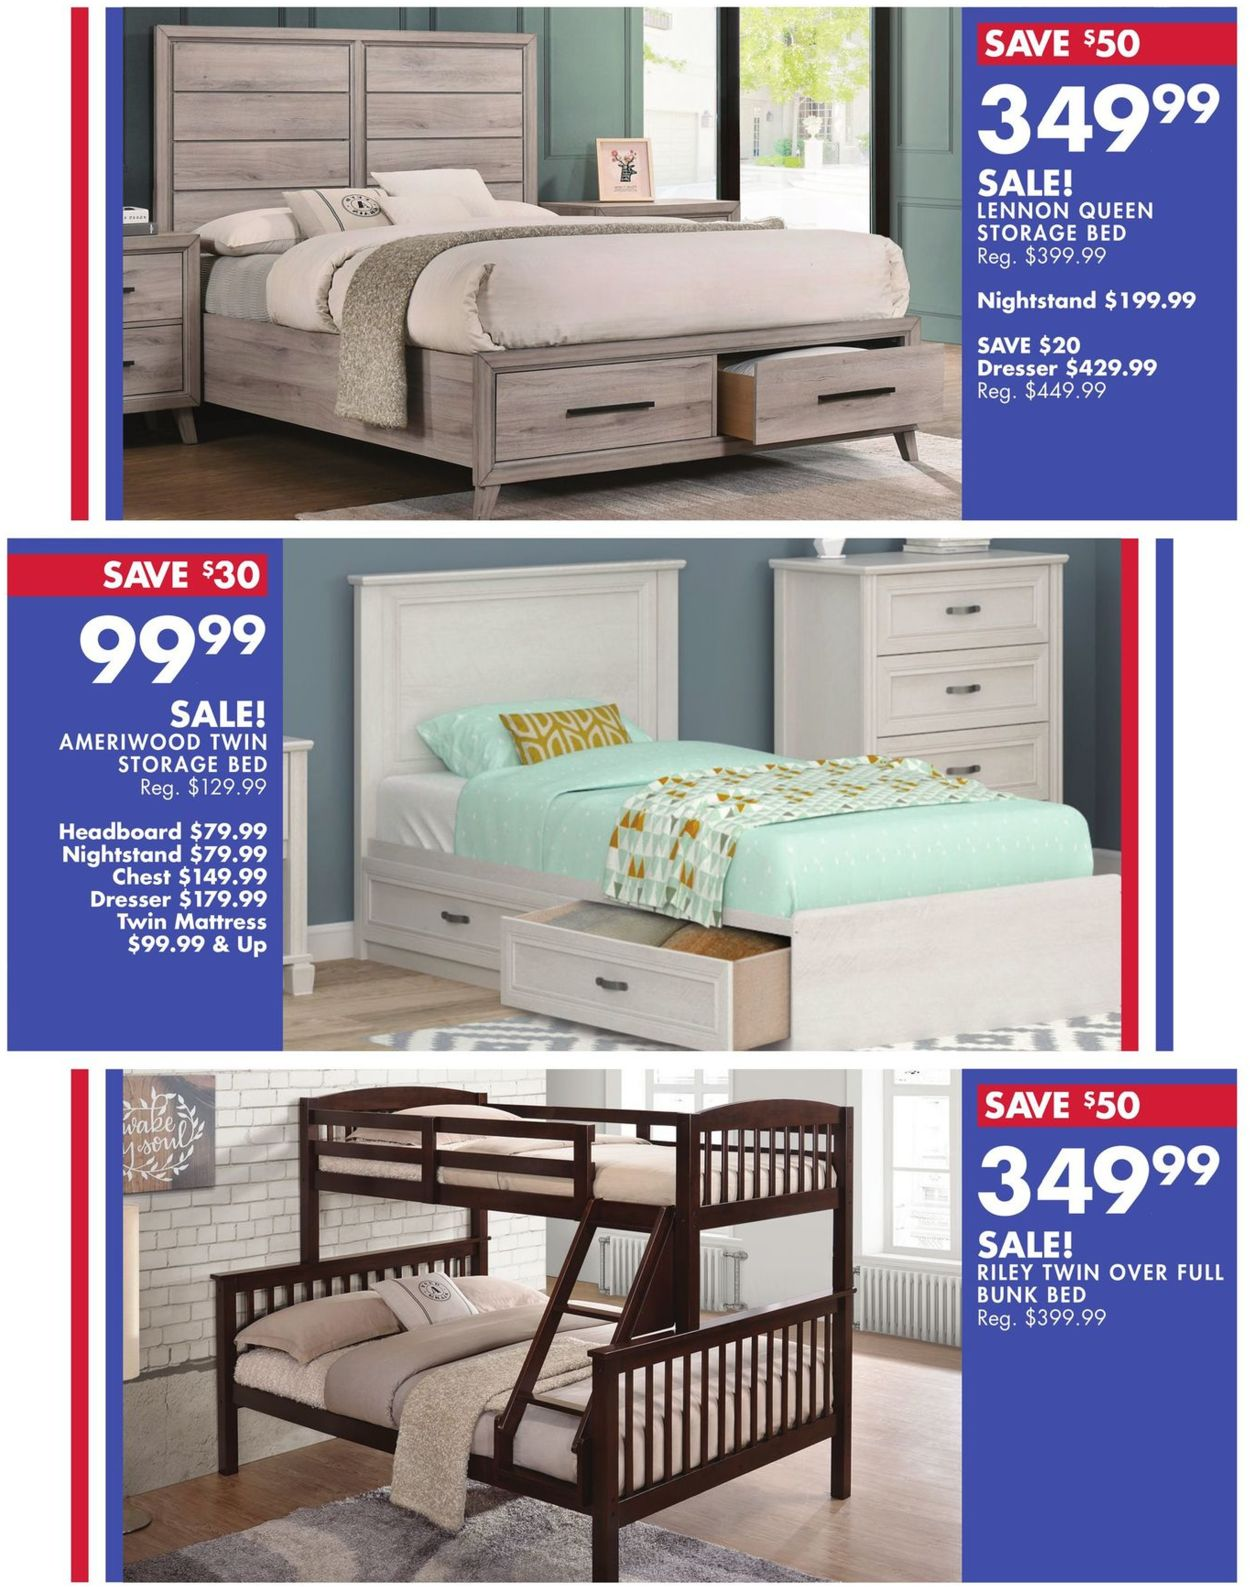 Big Lots Current Weekly Ad 02 08 02 22 2020 6 Frequent Ads Com